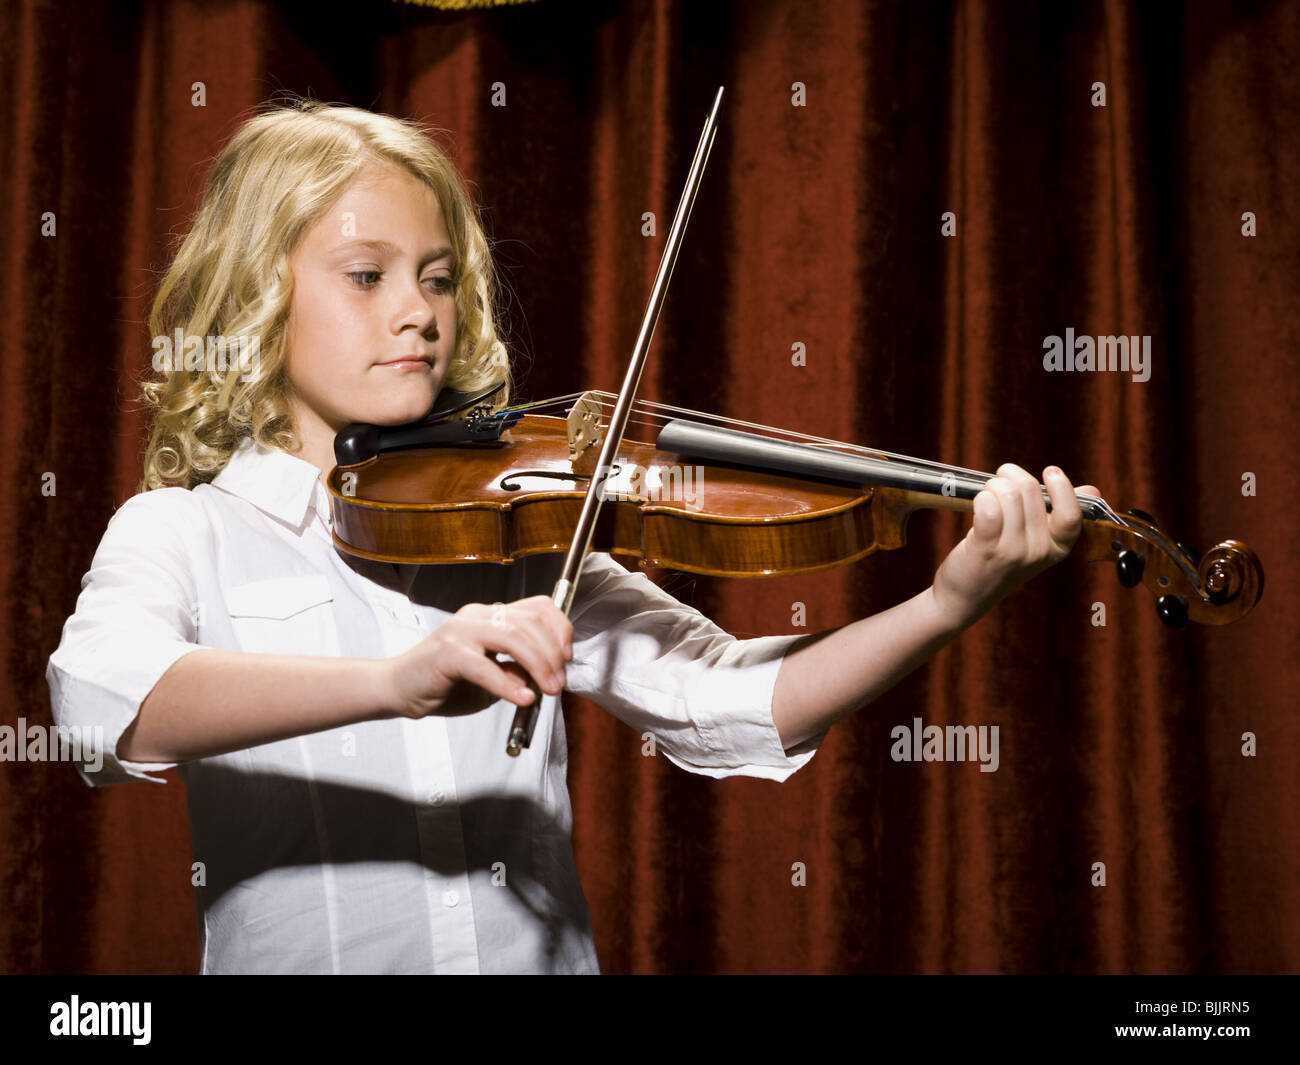 Girl playing violin on stage Stock Photo, Royalty Free ...